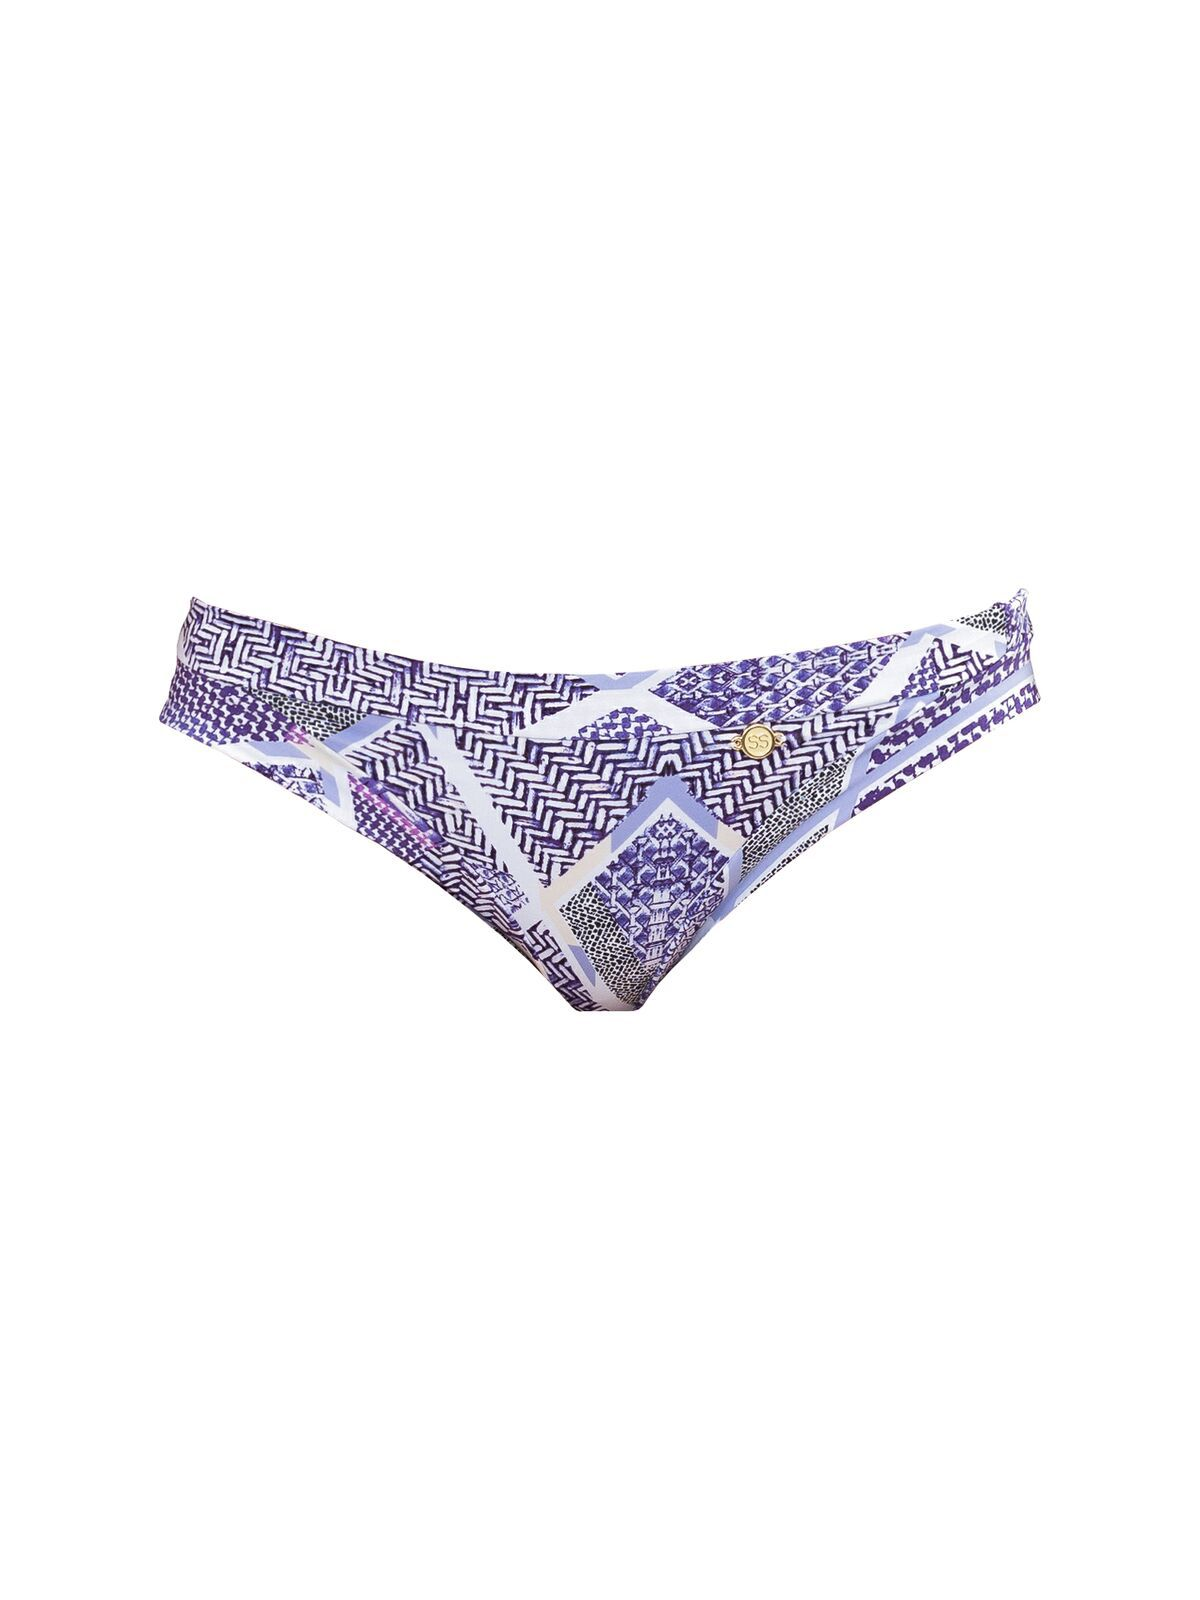 SUNSEEKER Classic hipster bikini brief, Multi-Coloured